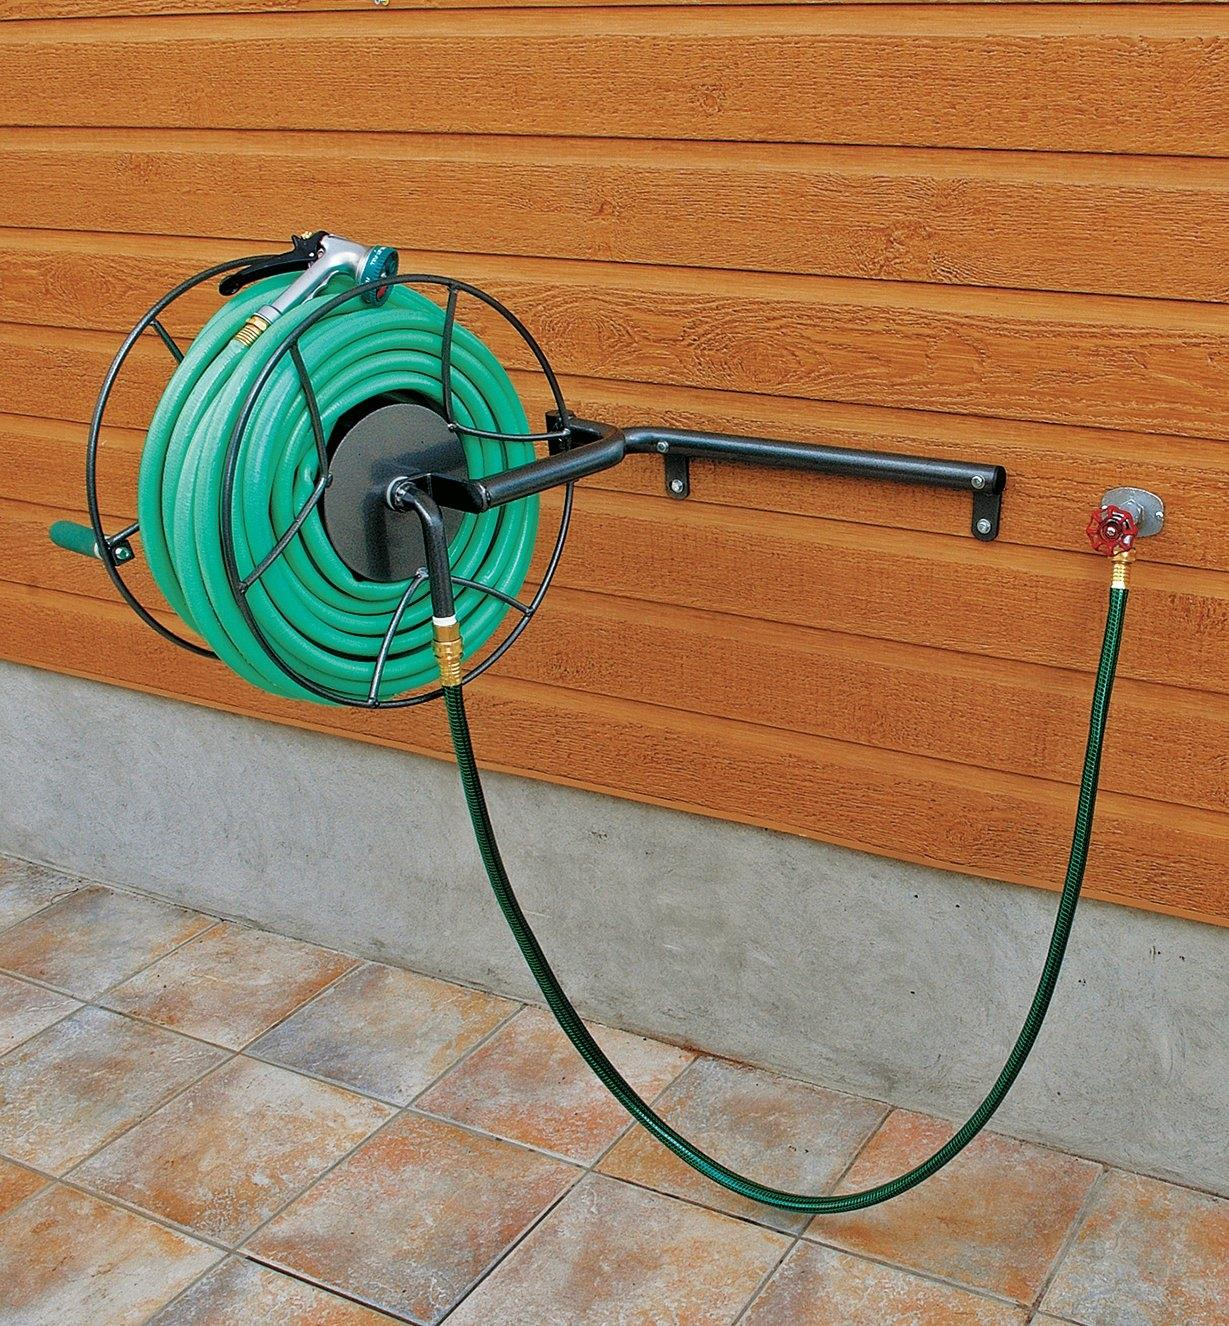 Wall Mount Swivel Hose Reel Lee Valley Tools